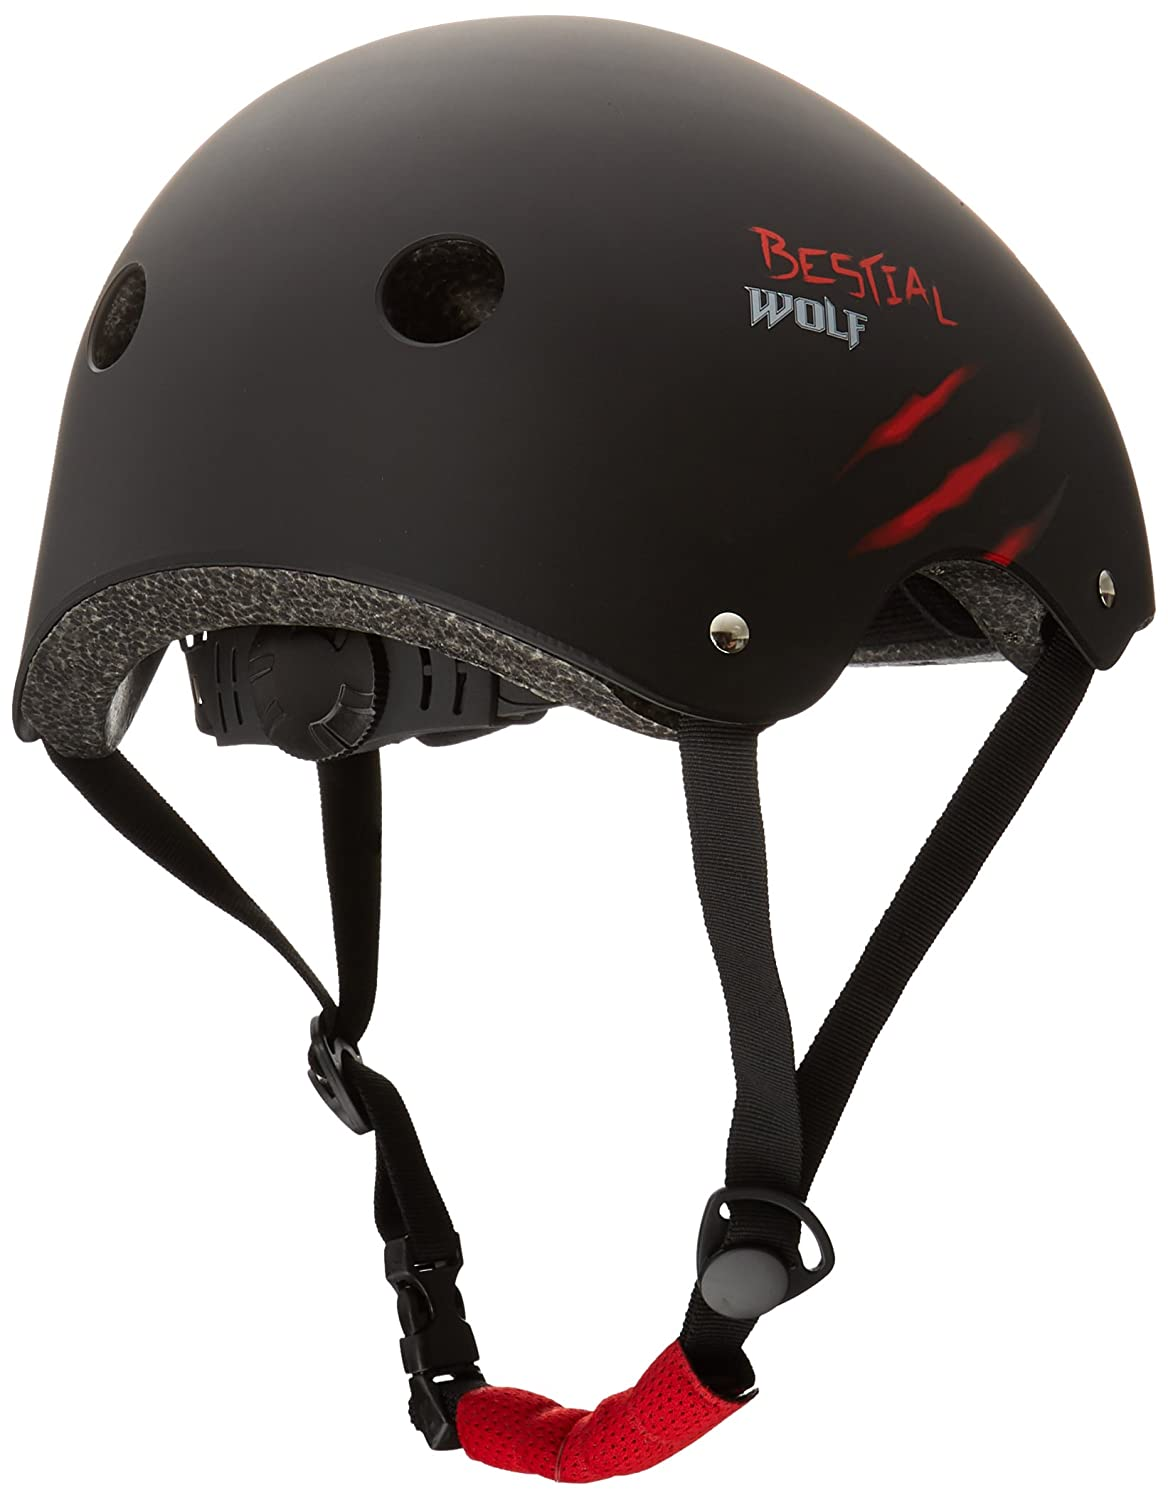 BESTIAL WOLF Skull, Casco Negro para Scooter Freestyle